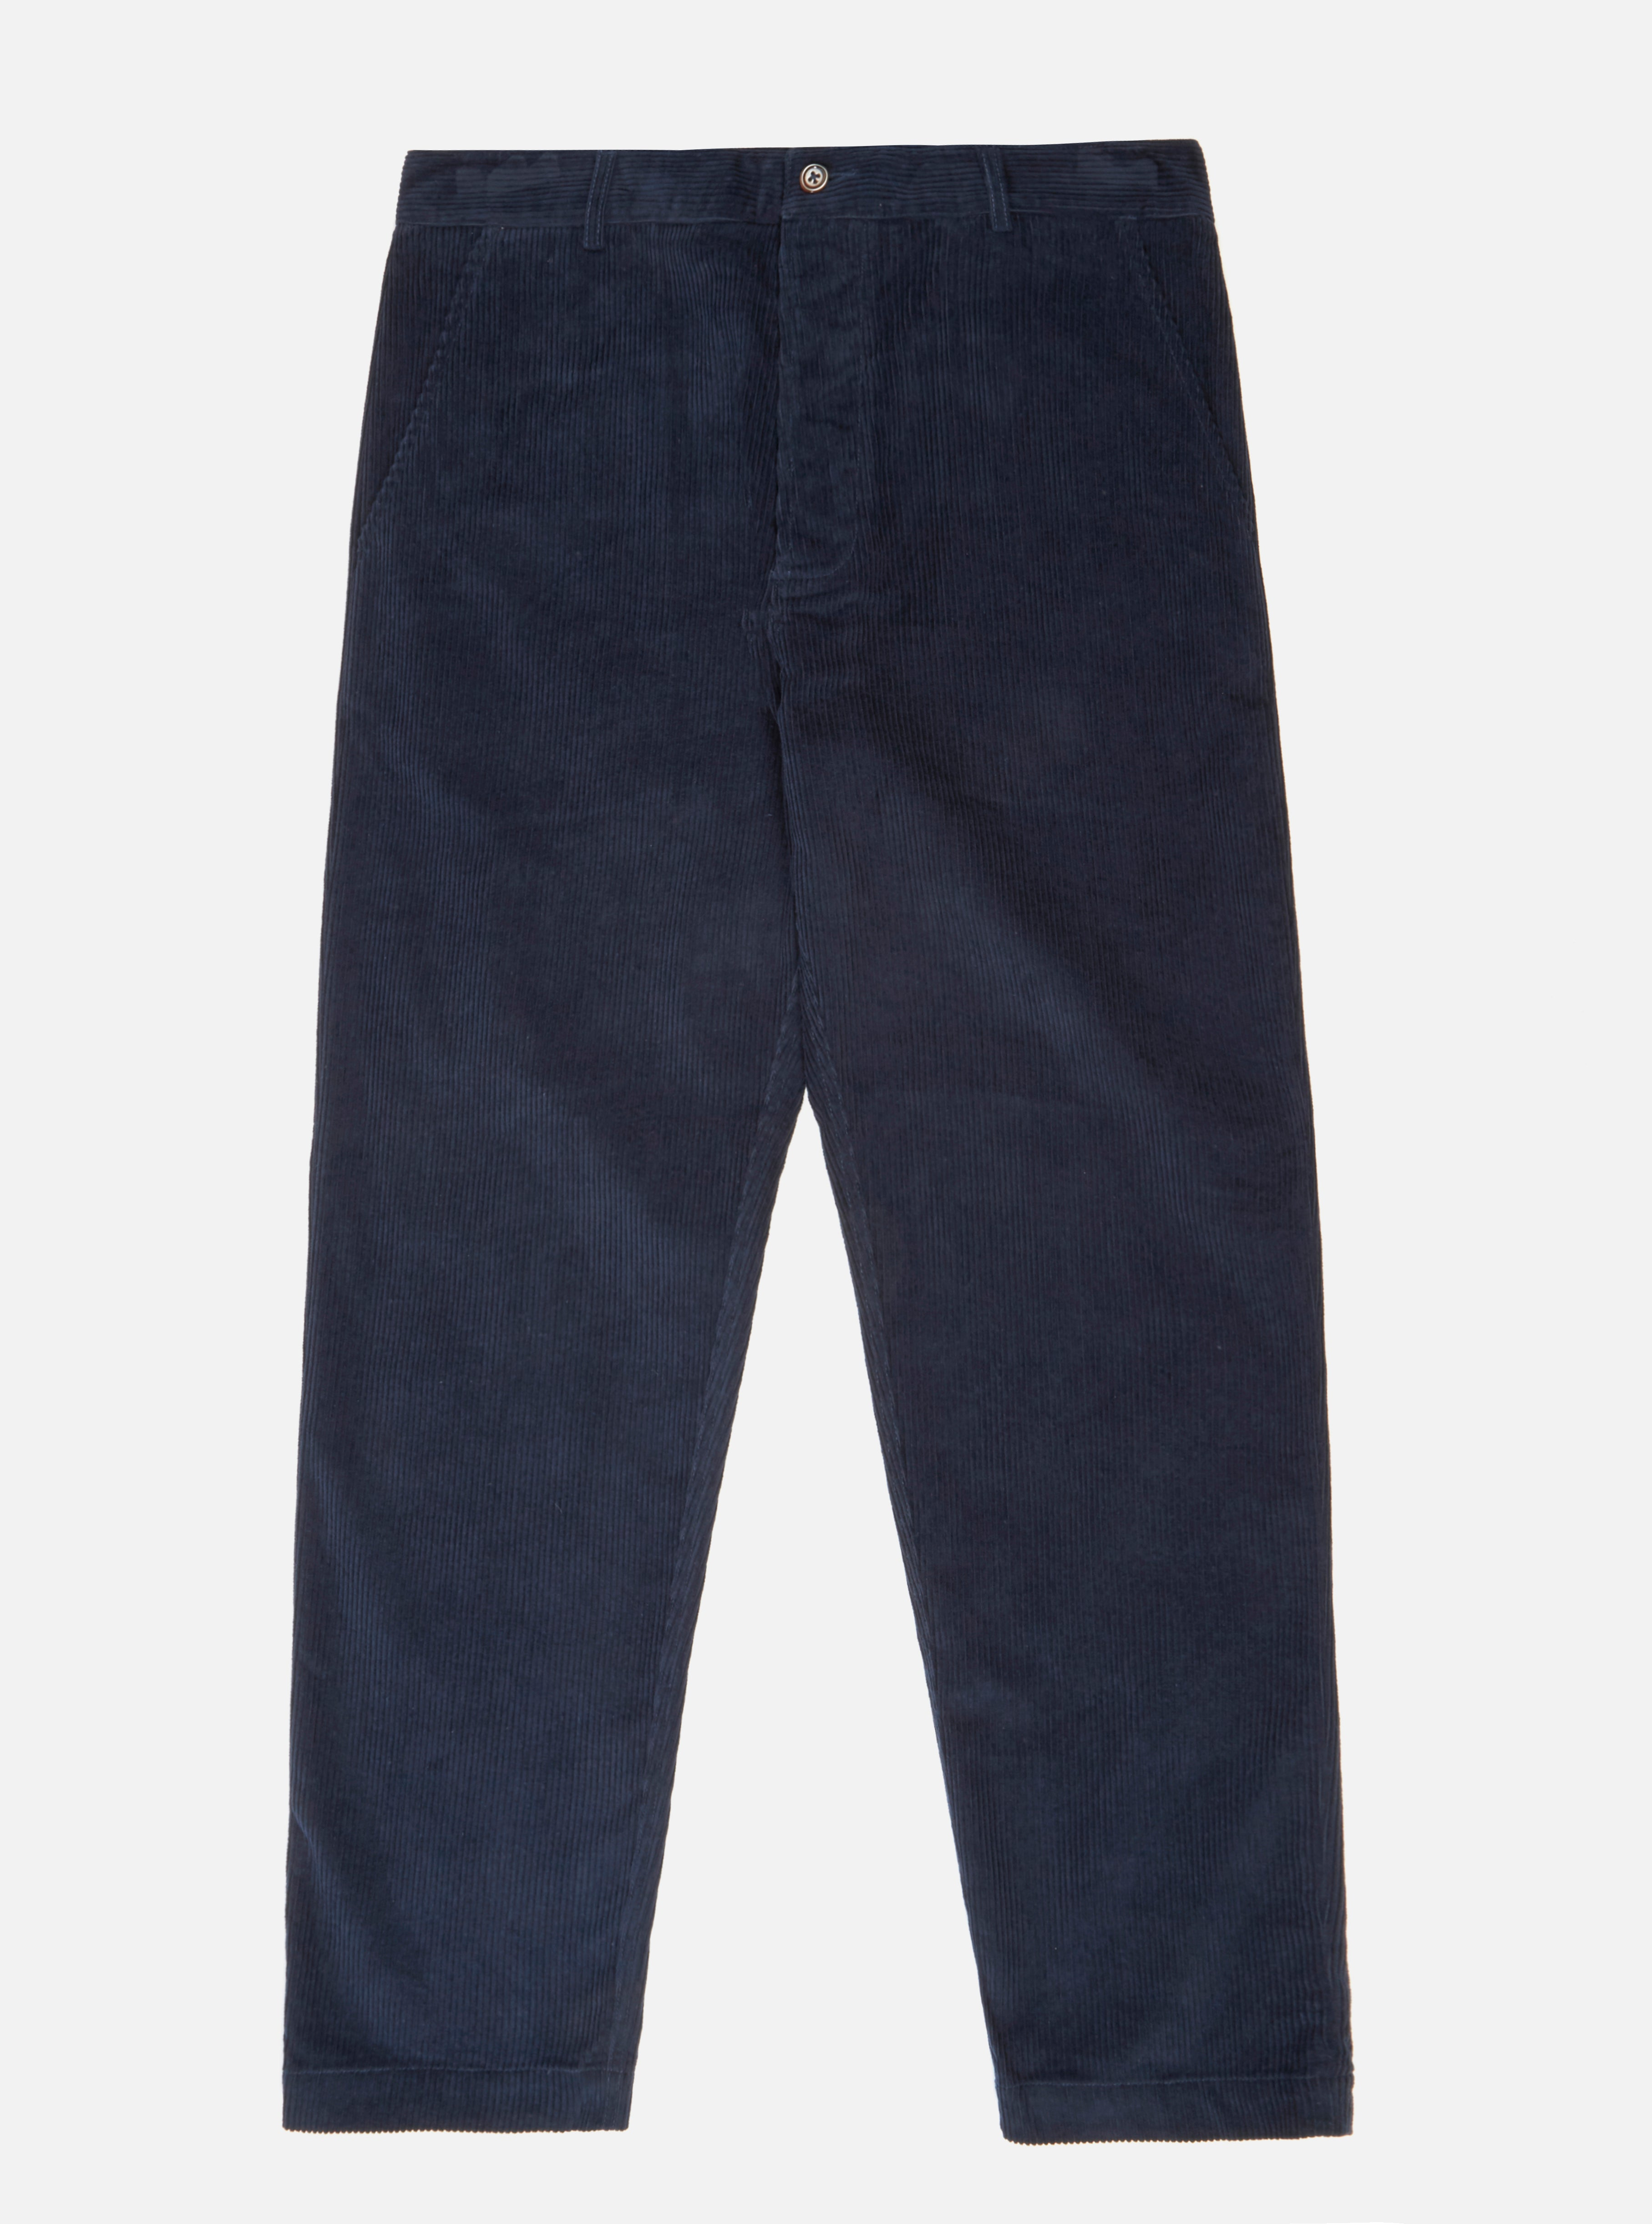 Universal Works Military Chino in Navy 8 Wale Cord